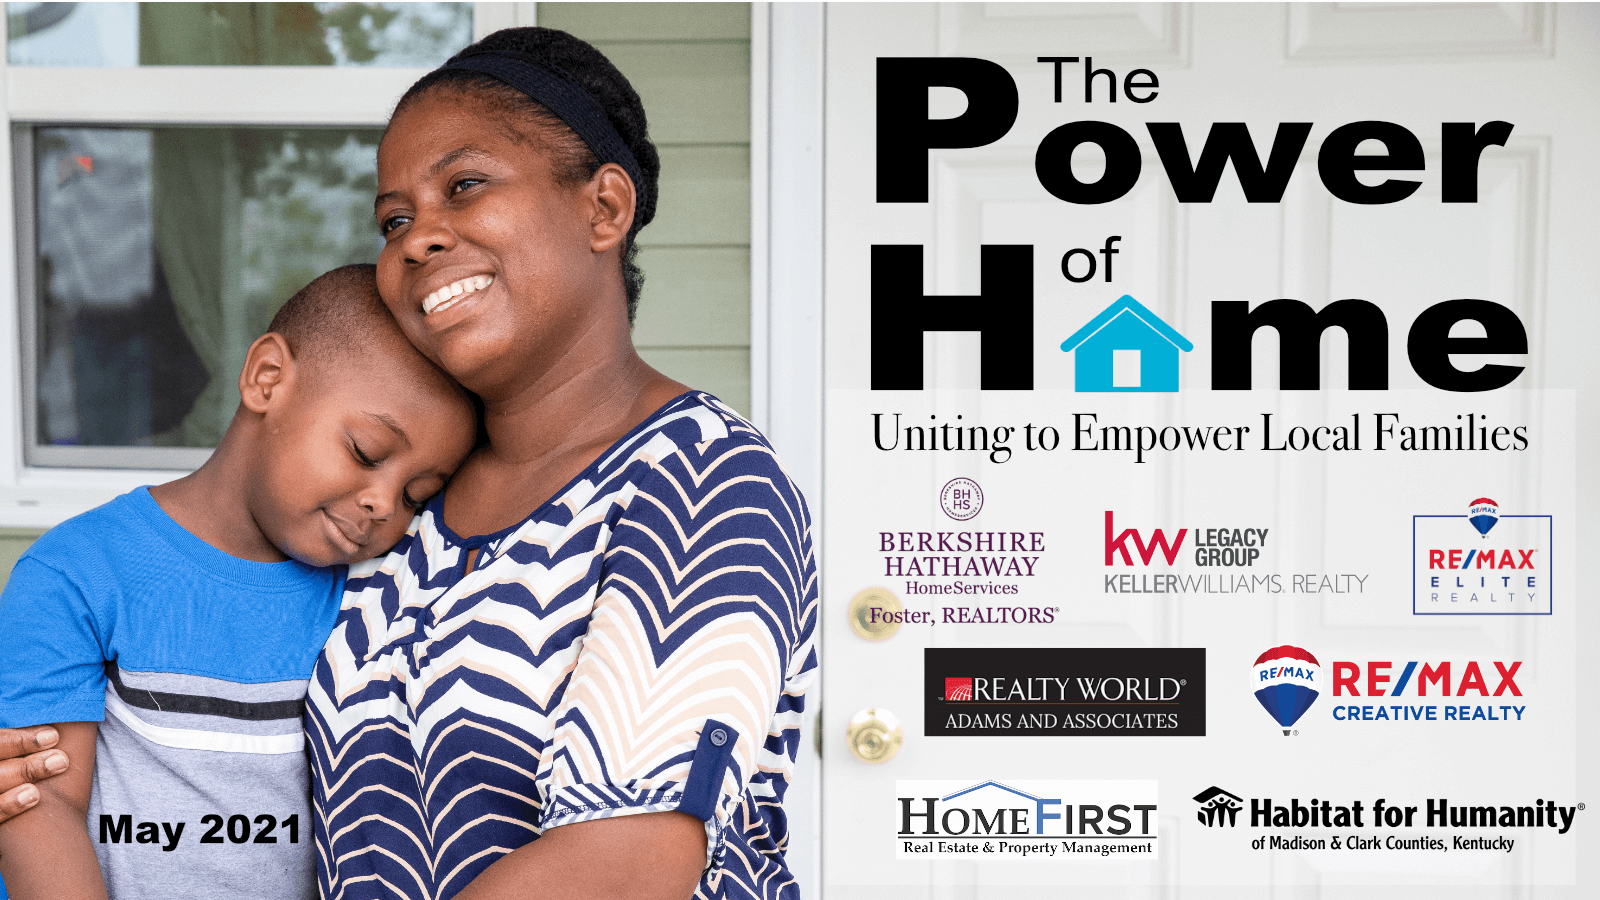 The Power of Home 2021